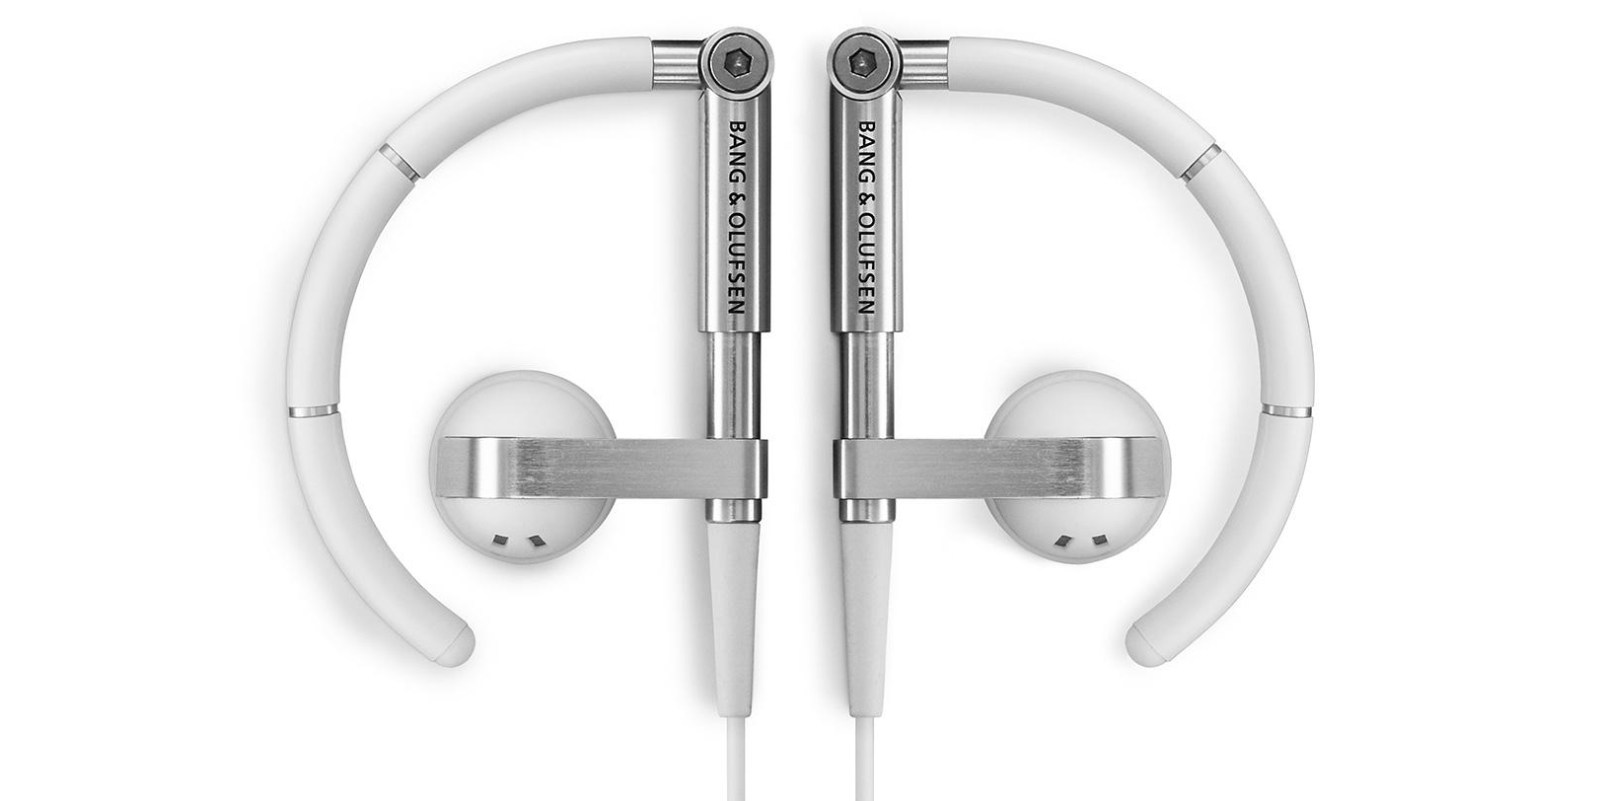 These Bang & Olufsen in-ears are sure to be awesome for $75 shipped.